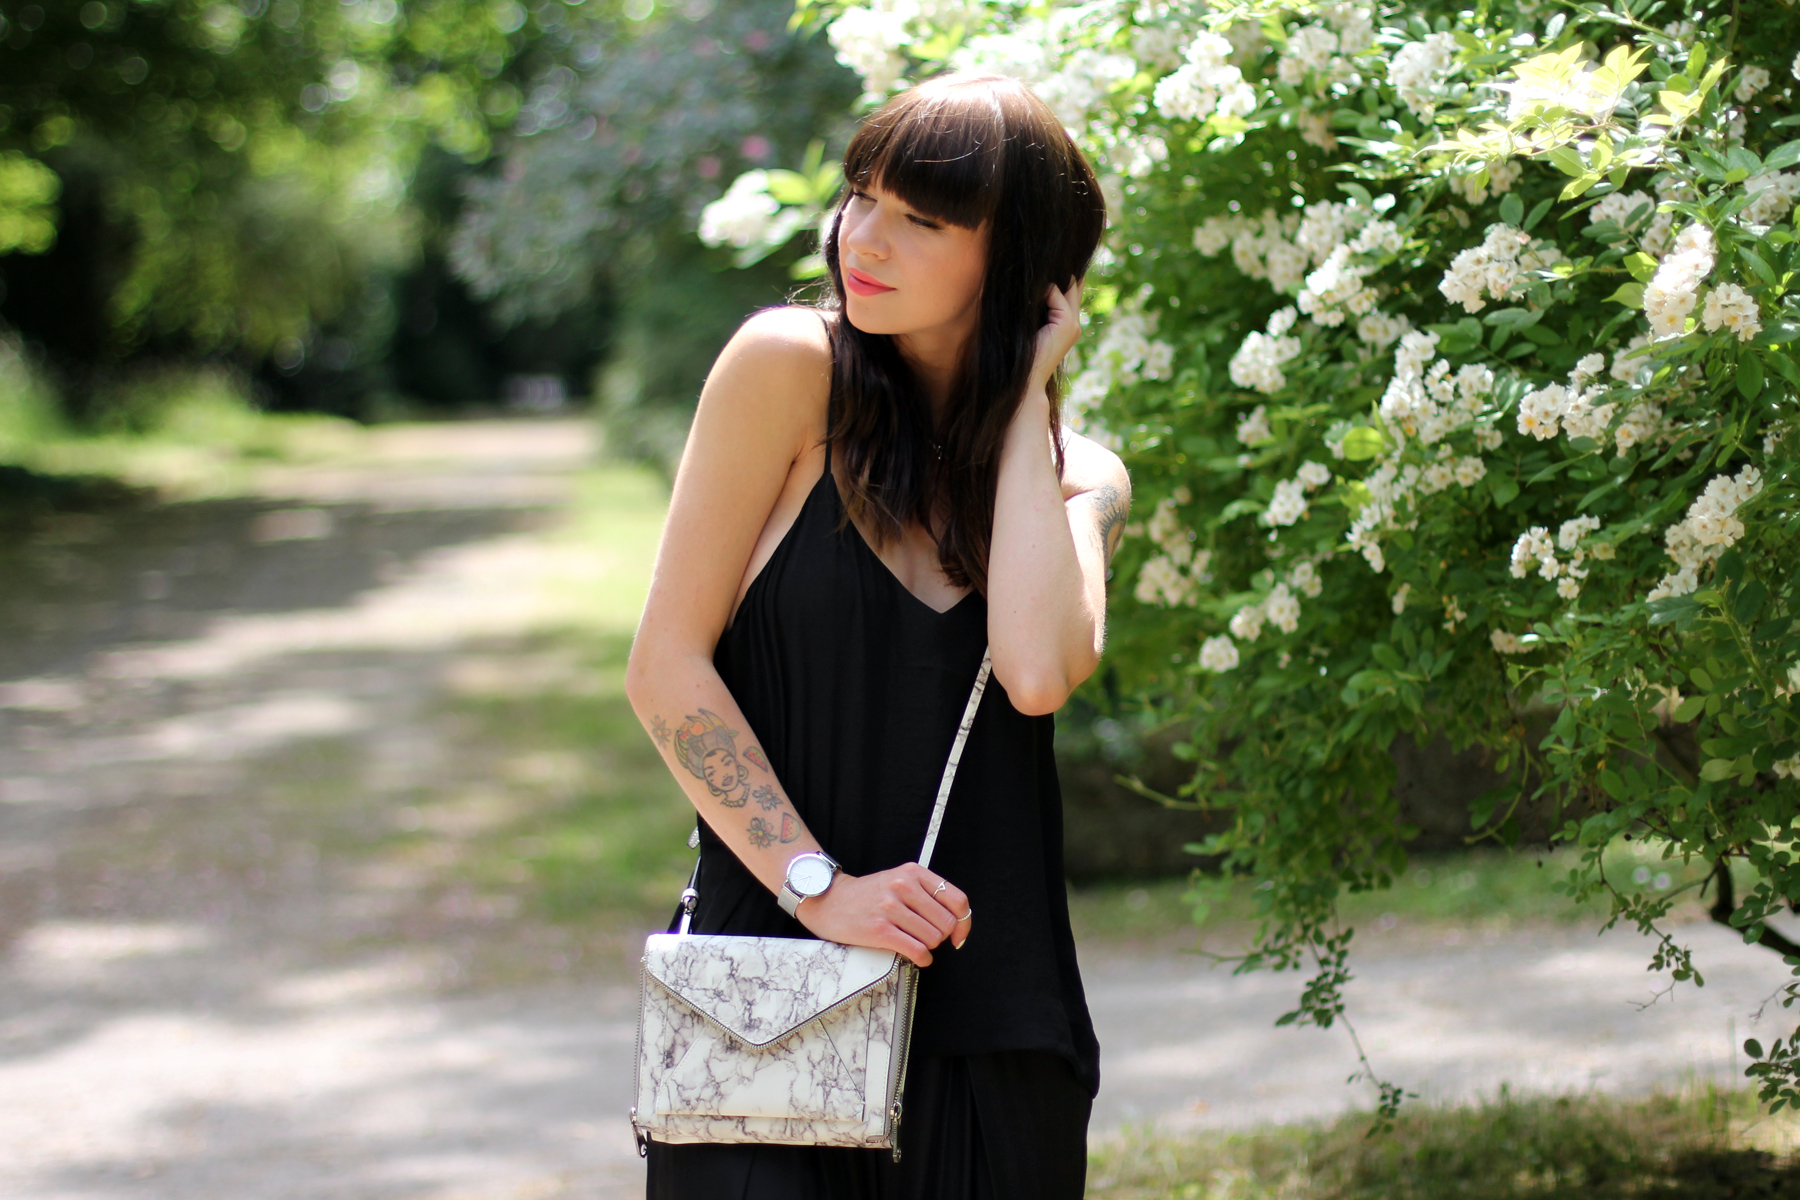 black outfit summer marble bag cute rebecca minkoff shopbop cute roses fashion blogger berlin düsseldorf ricarda schernus cats & dogs blog 3